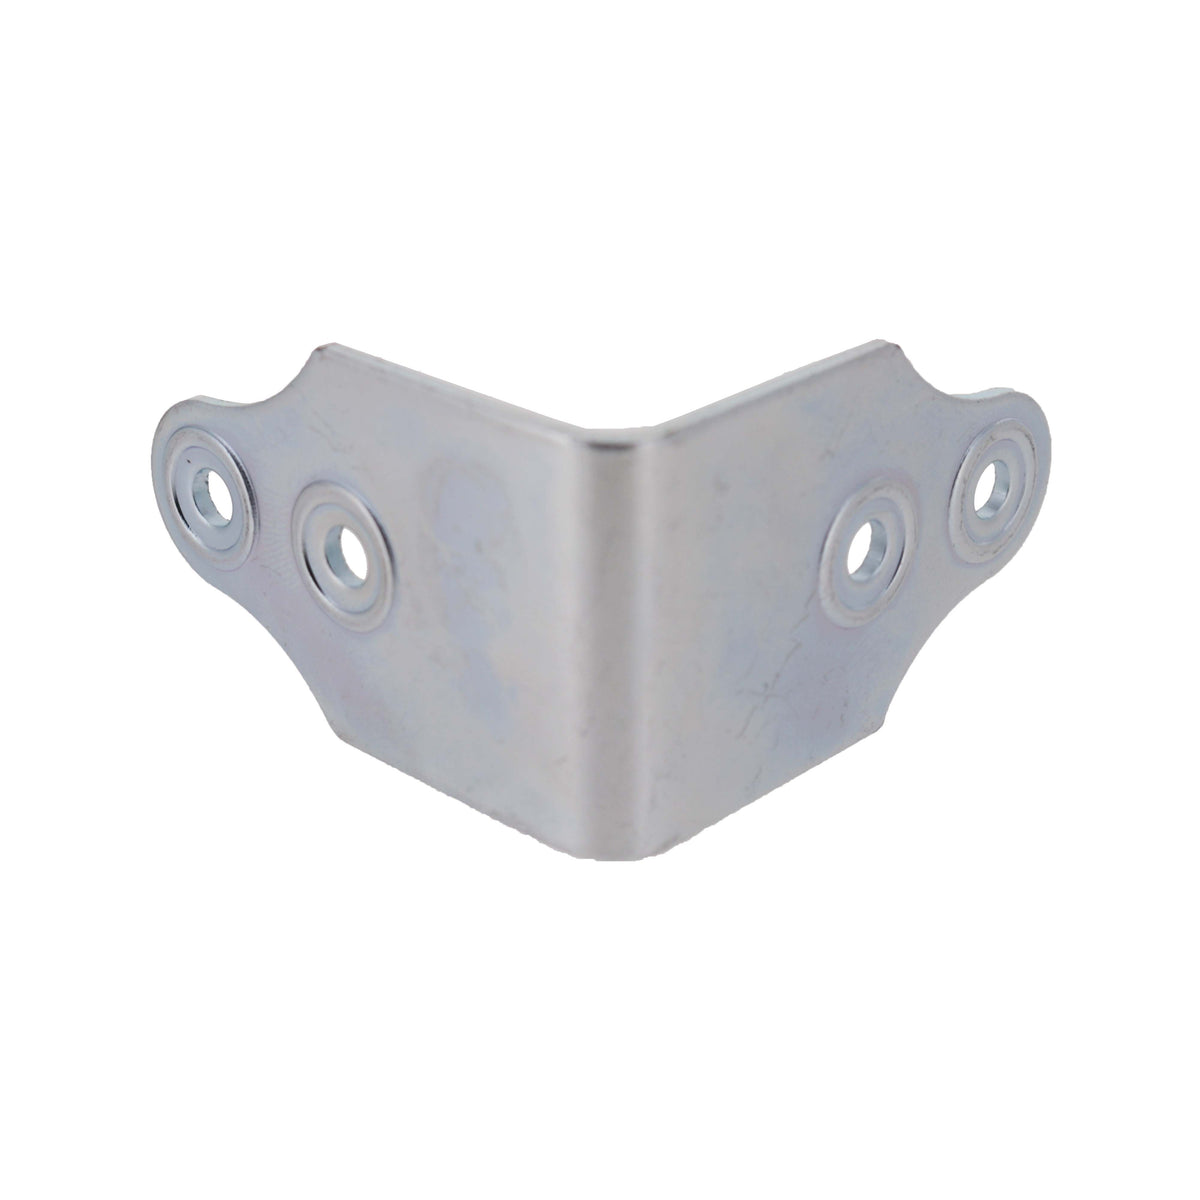 Four-Hole Clamp With Rivet Protectors